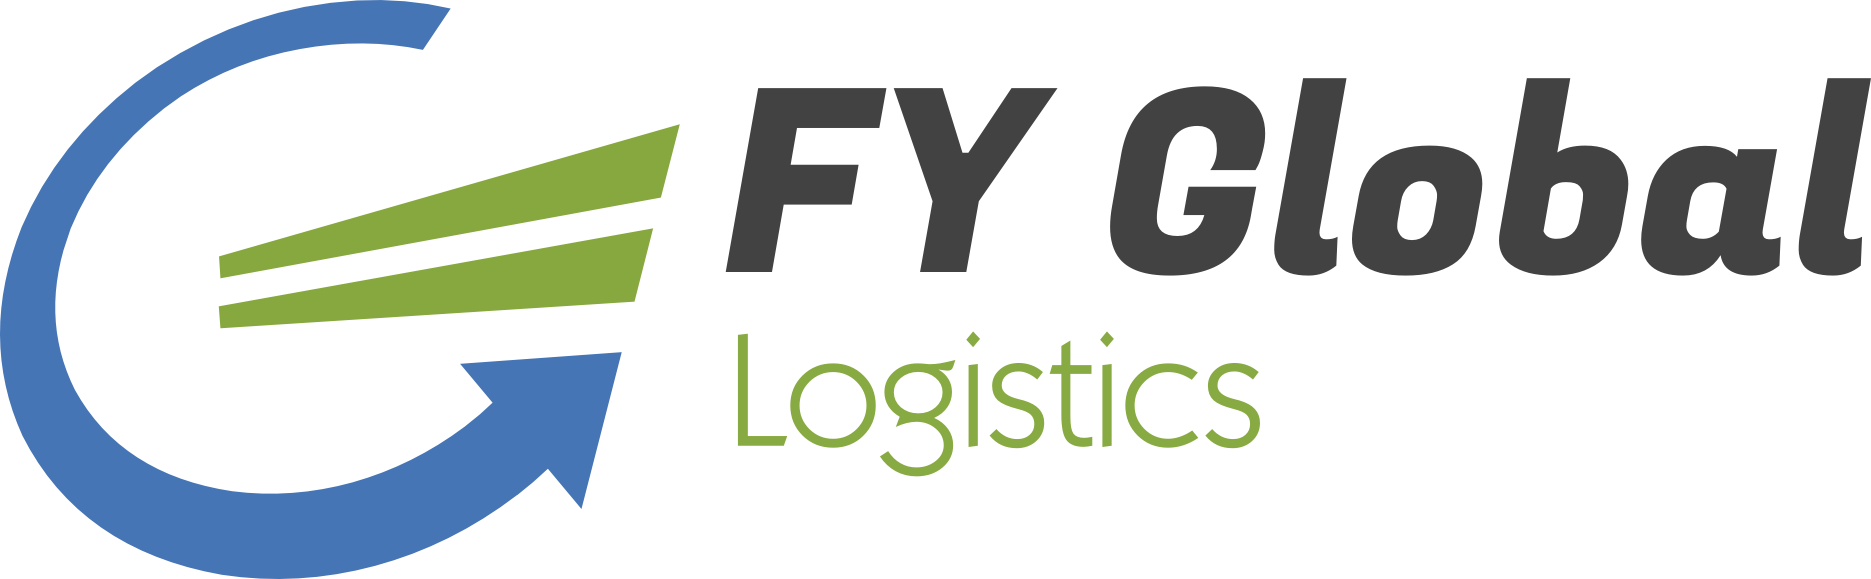 FY Global Logistics